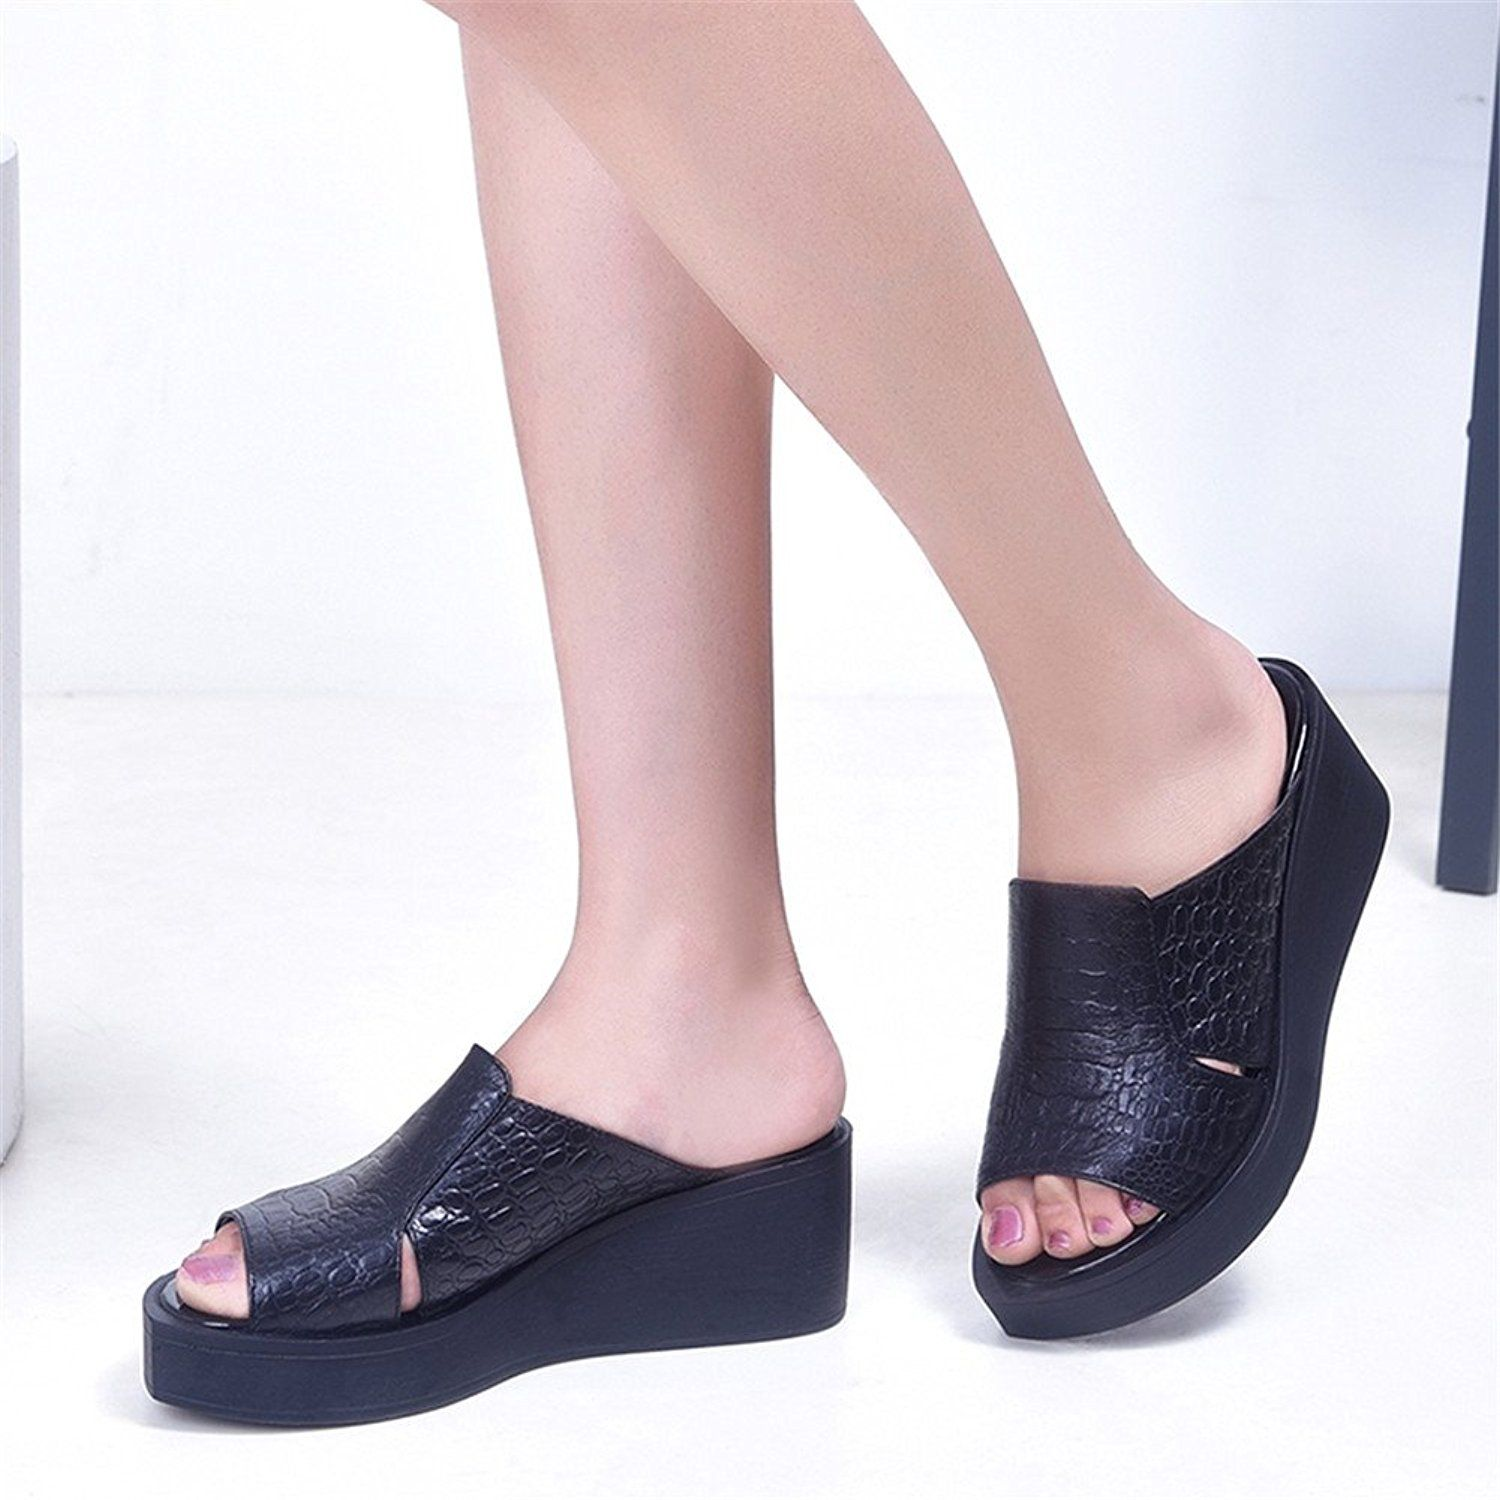 0e88764c11453 Amazon.com | Nedal Women's Open Toe Summer Platform Slipper Sandals ...